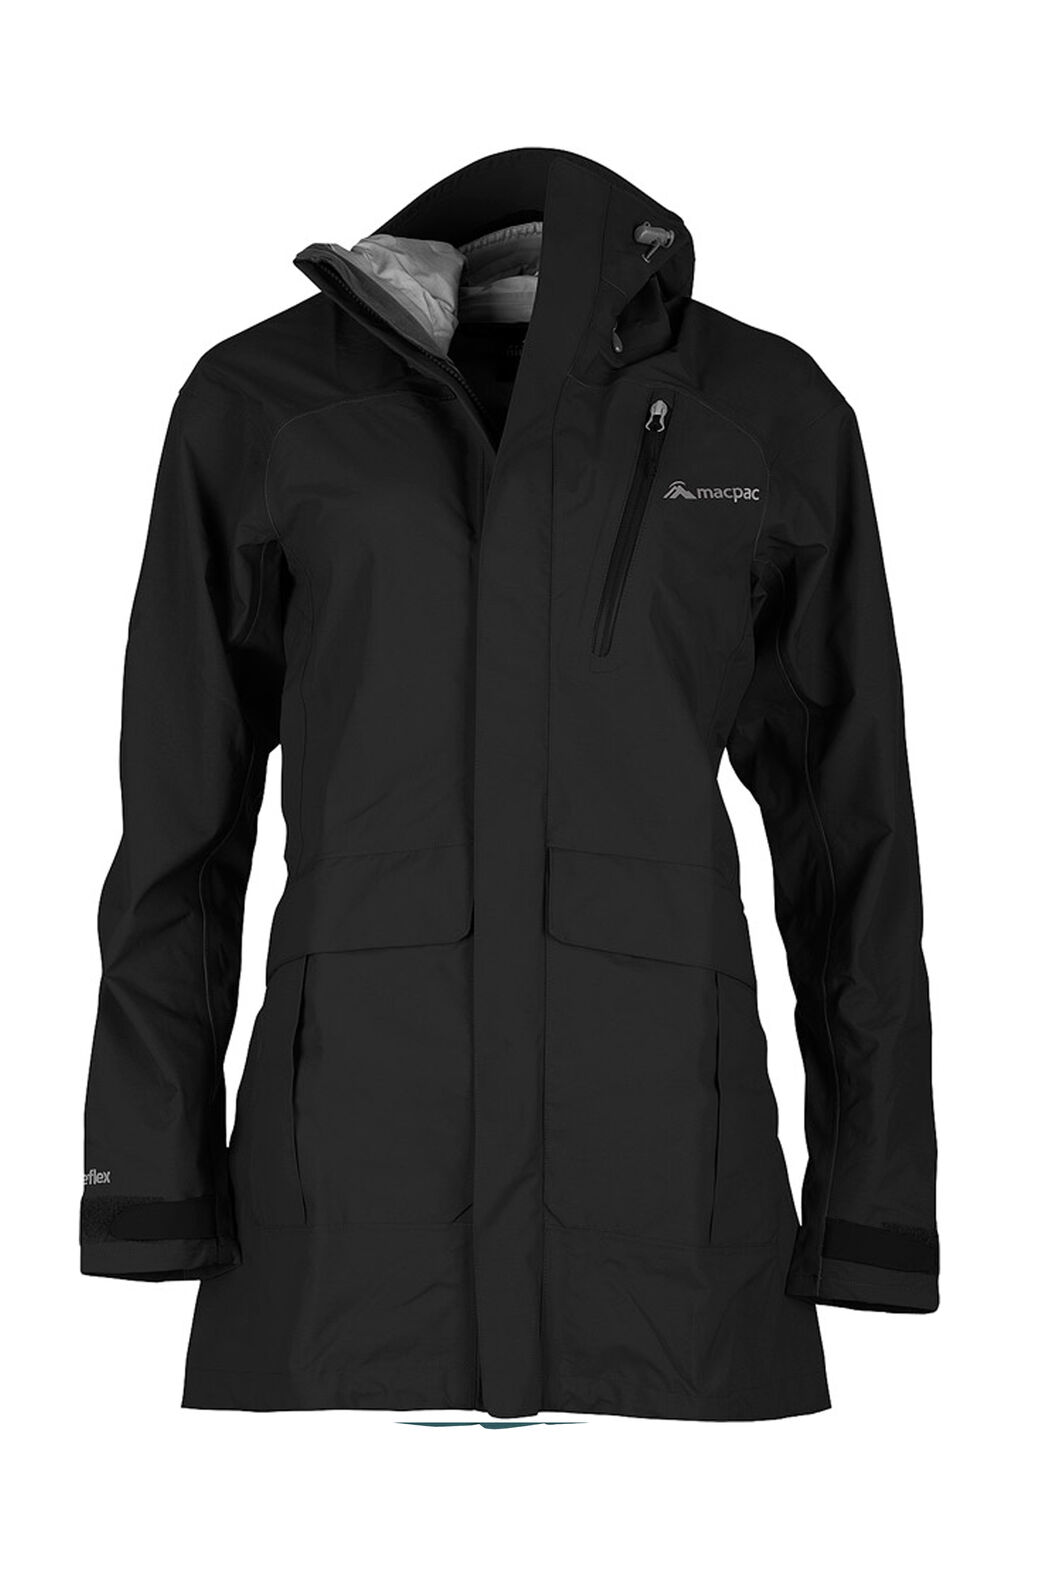 Macpac Copland Long Rain Jacket — Women's, Black, hi-res